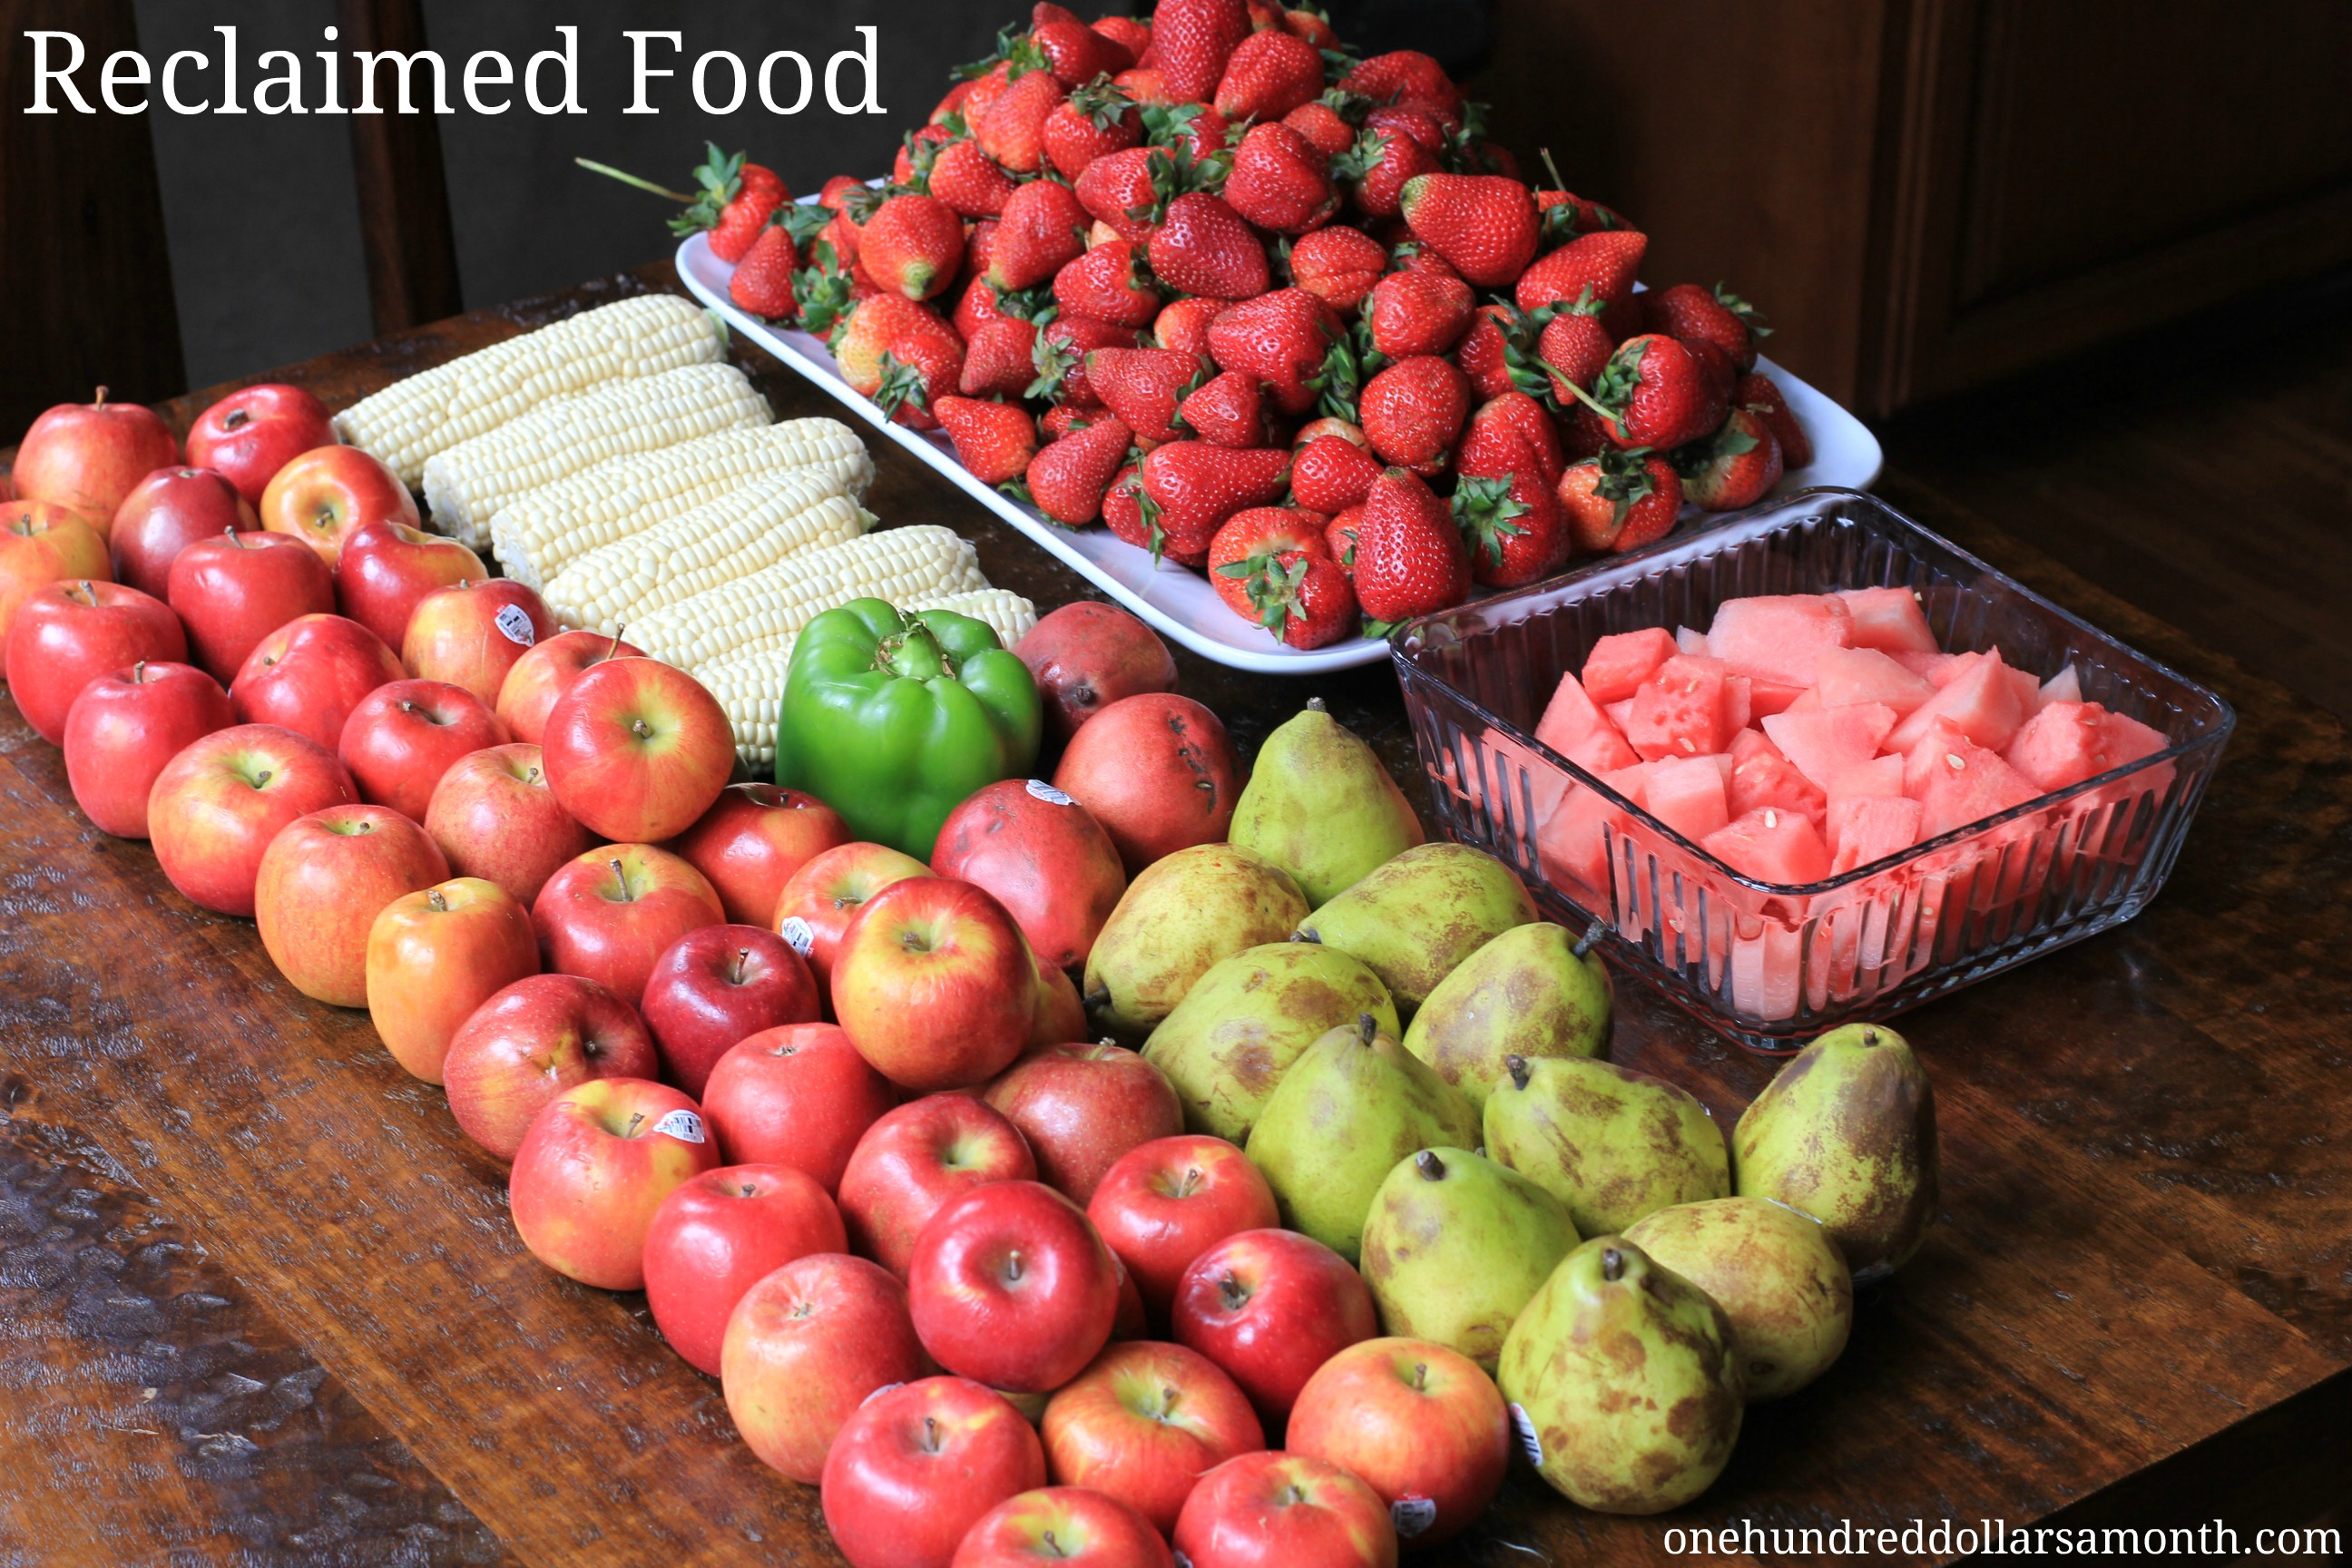 Free Food Week # 6 Reclaimed Food: Show and Tell